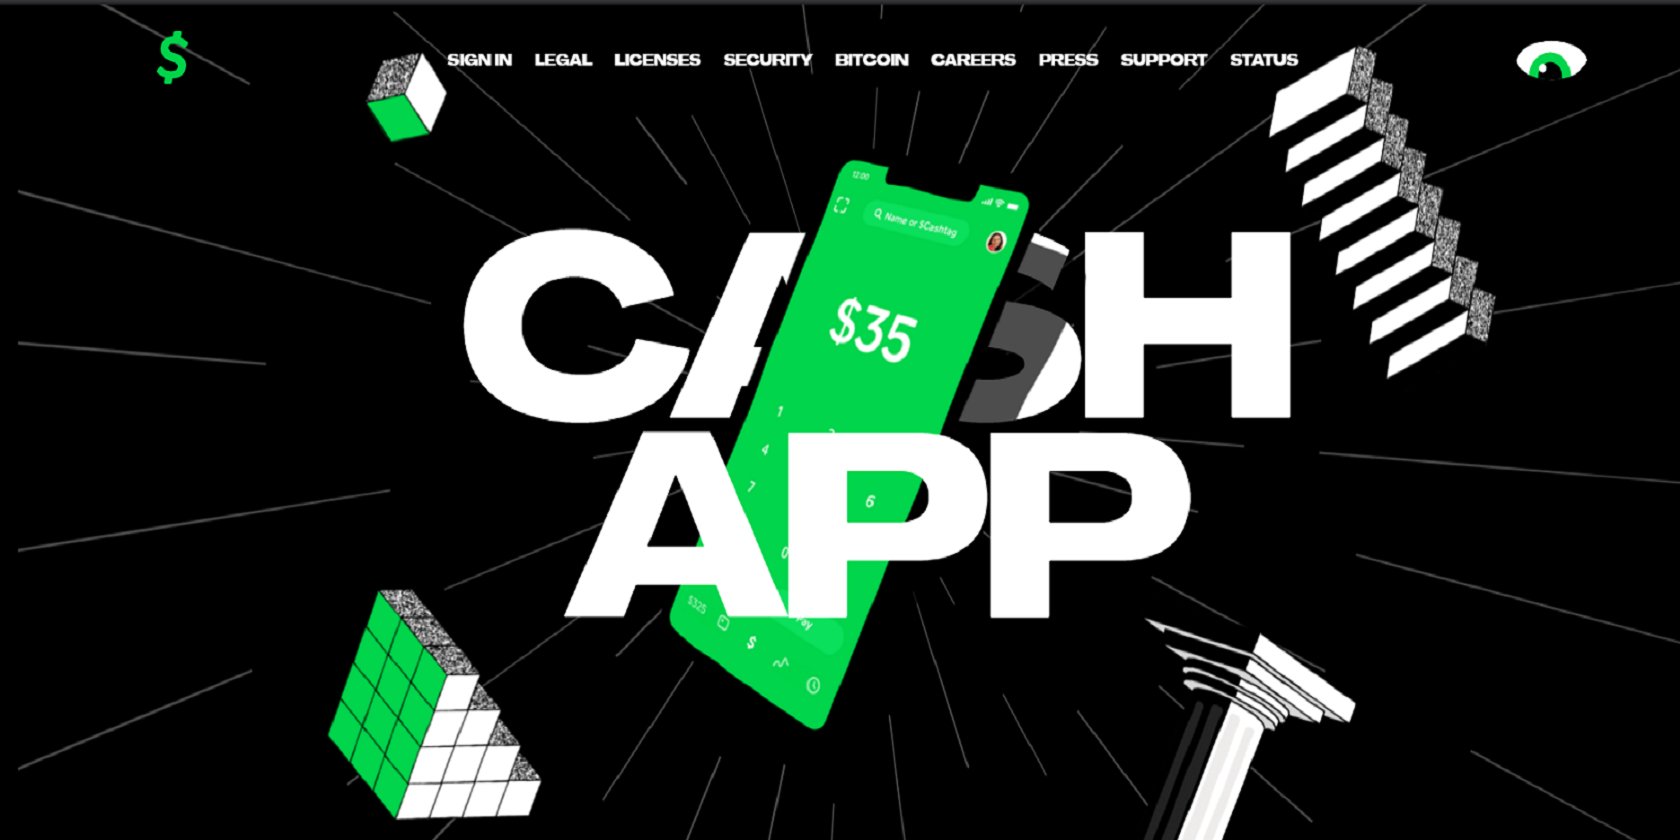 Is Cash App Safe And Secure Or Not